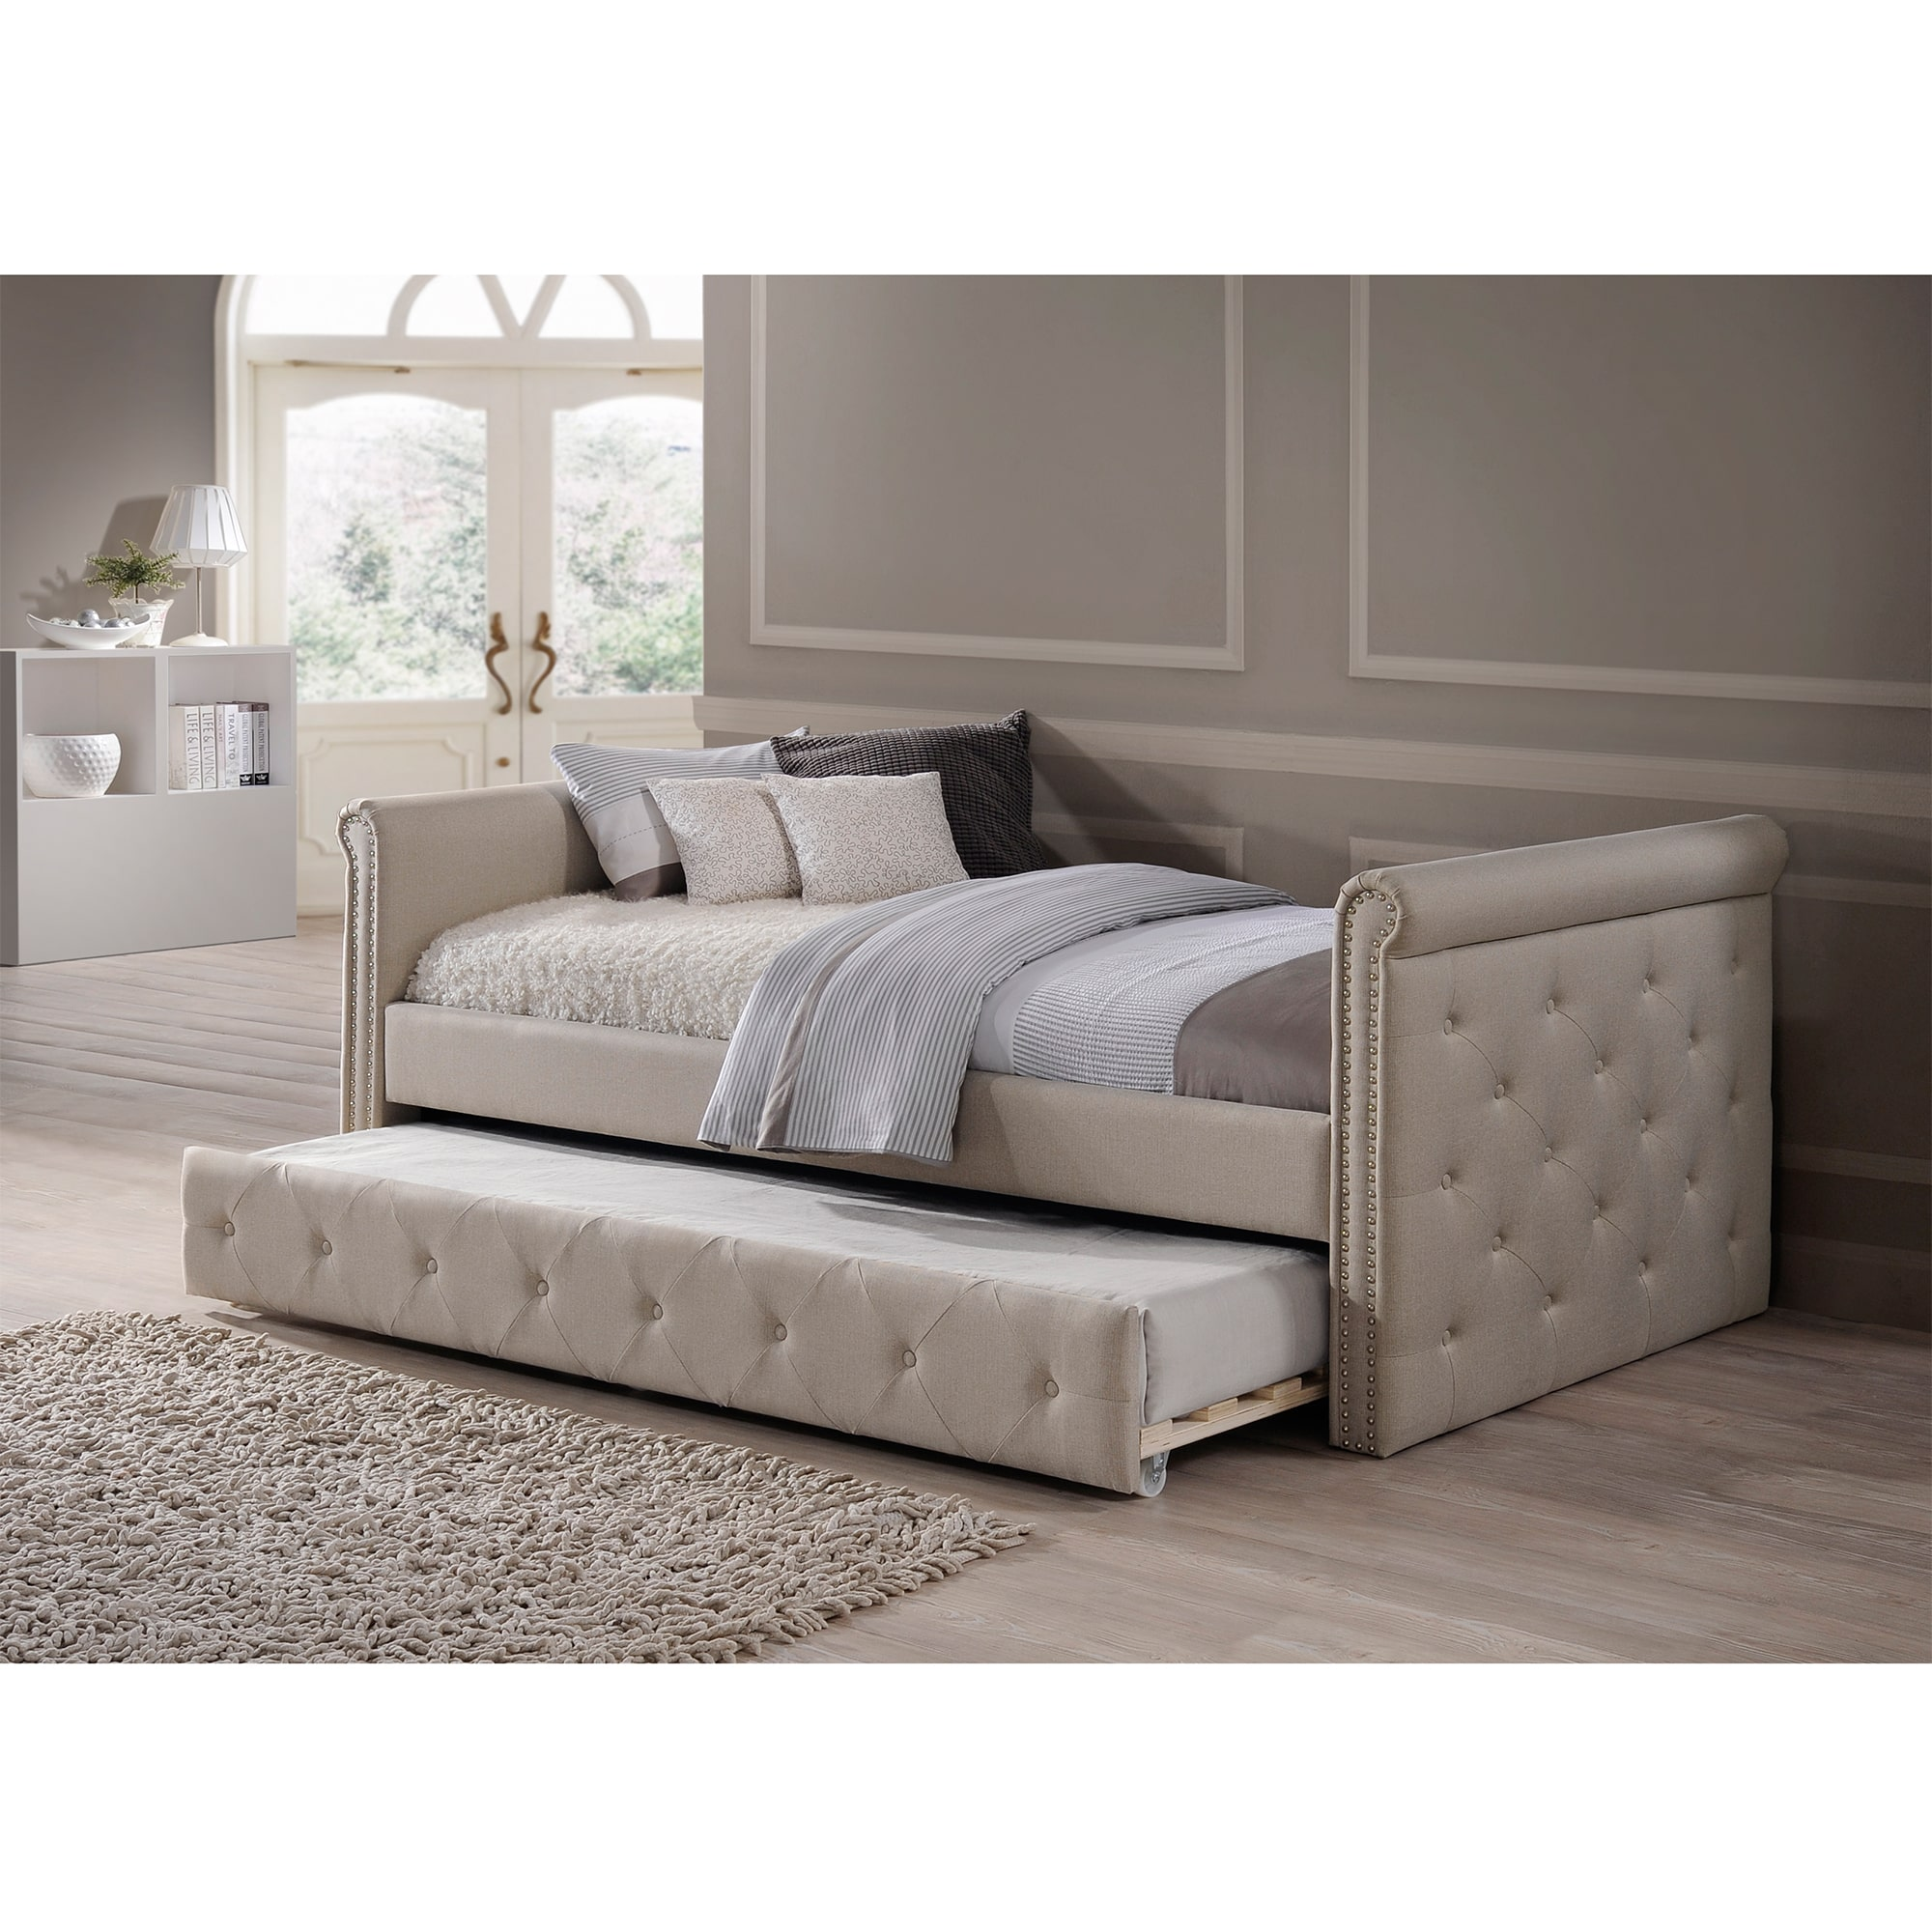 Baxton Studio Aisopos Modern and Contemporary Beige Fabric Tufted Twin Size Day Bed with Roll-out Trundle Guest Bed by Overstock